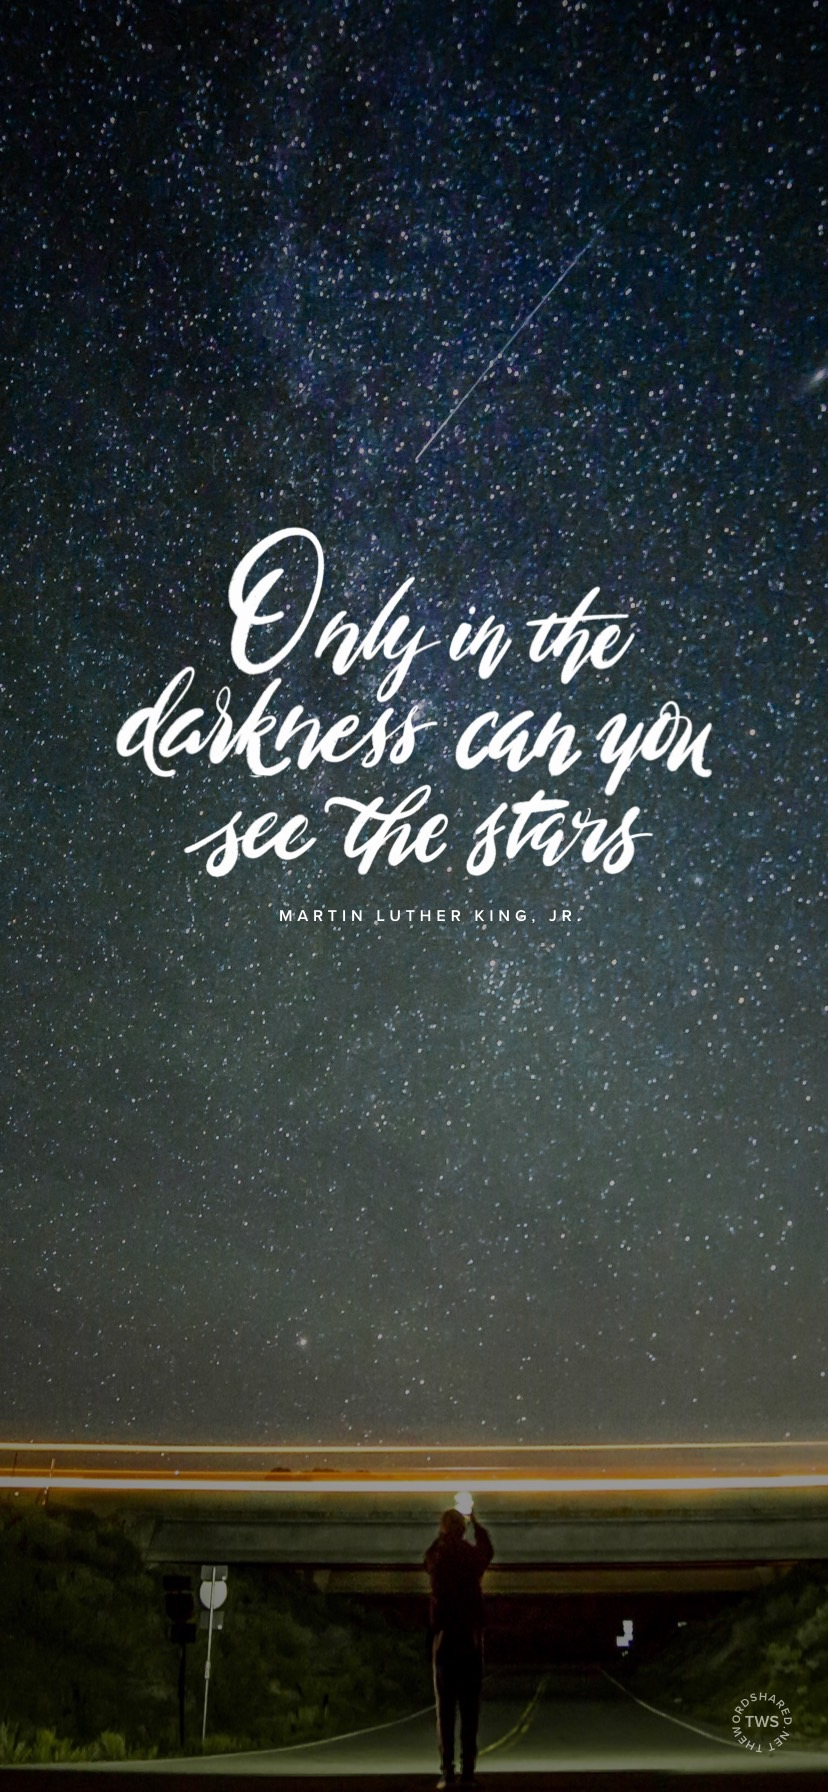 Only in darkness can you see the stars